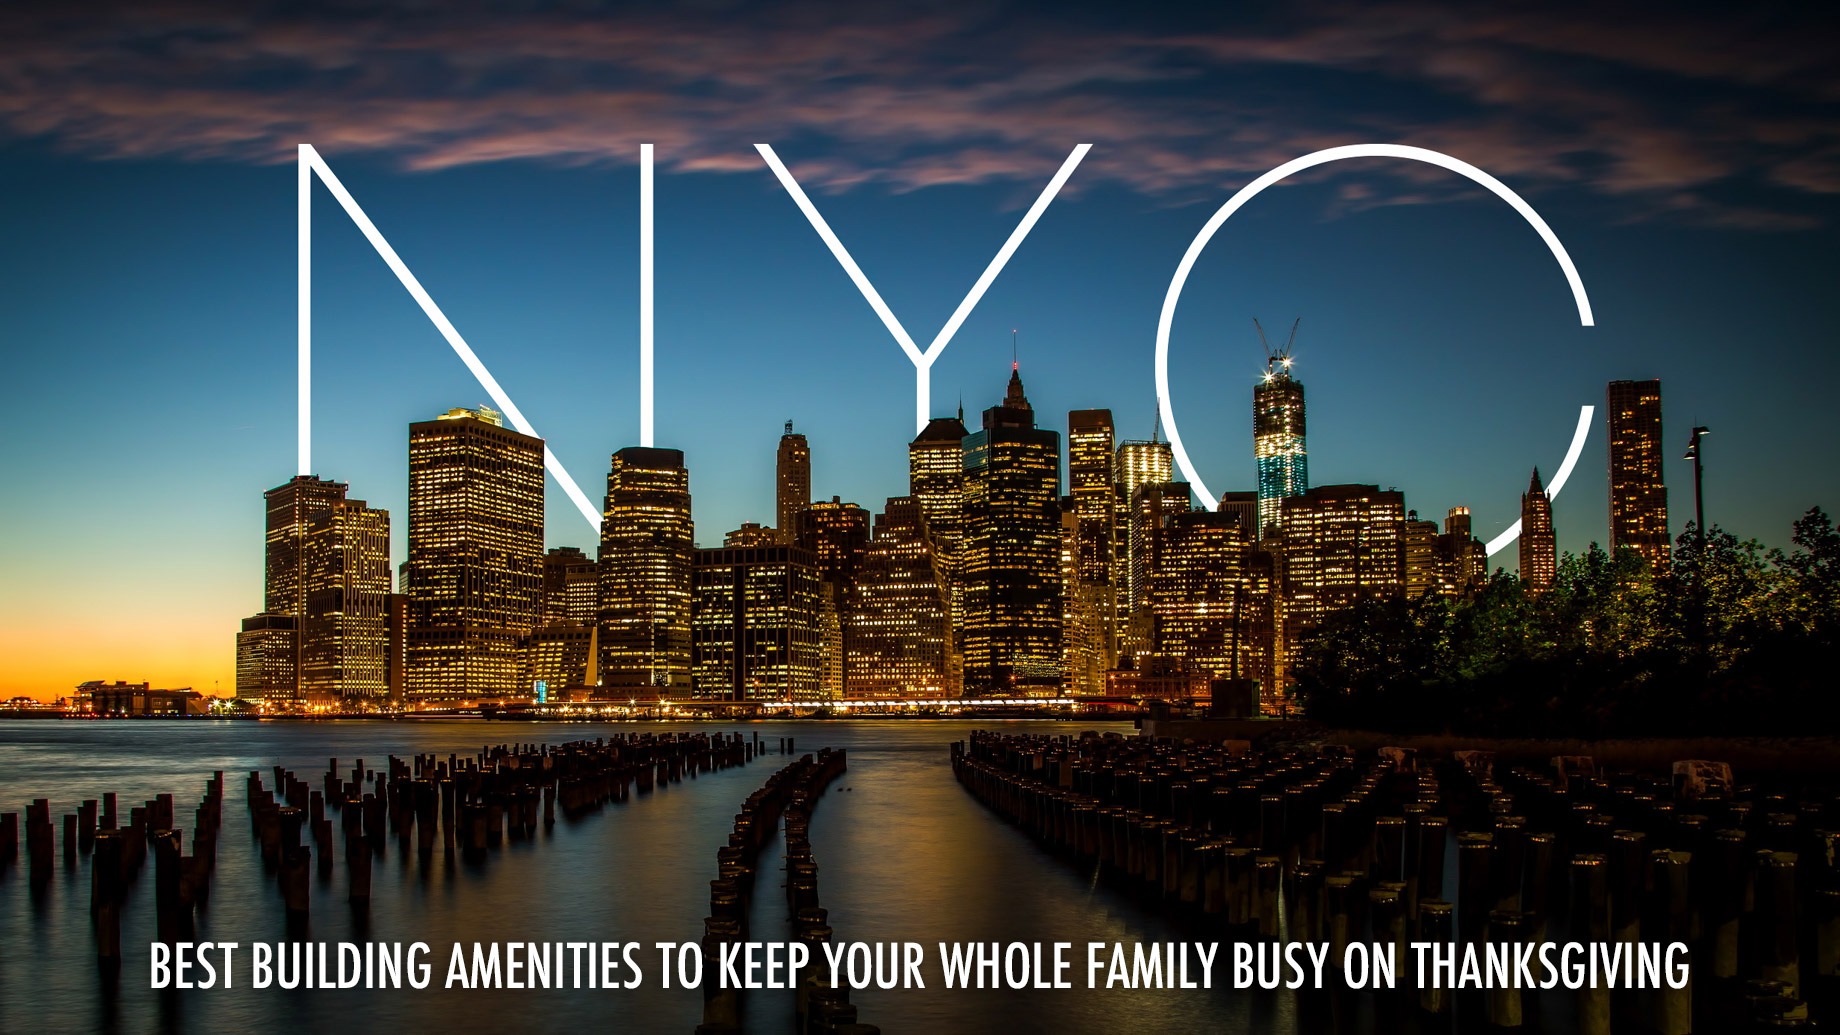 Best Building Amenities to Keep Your Whole Family Busy on Thanksgiving in NYC